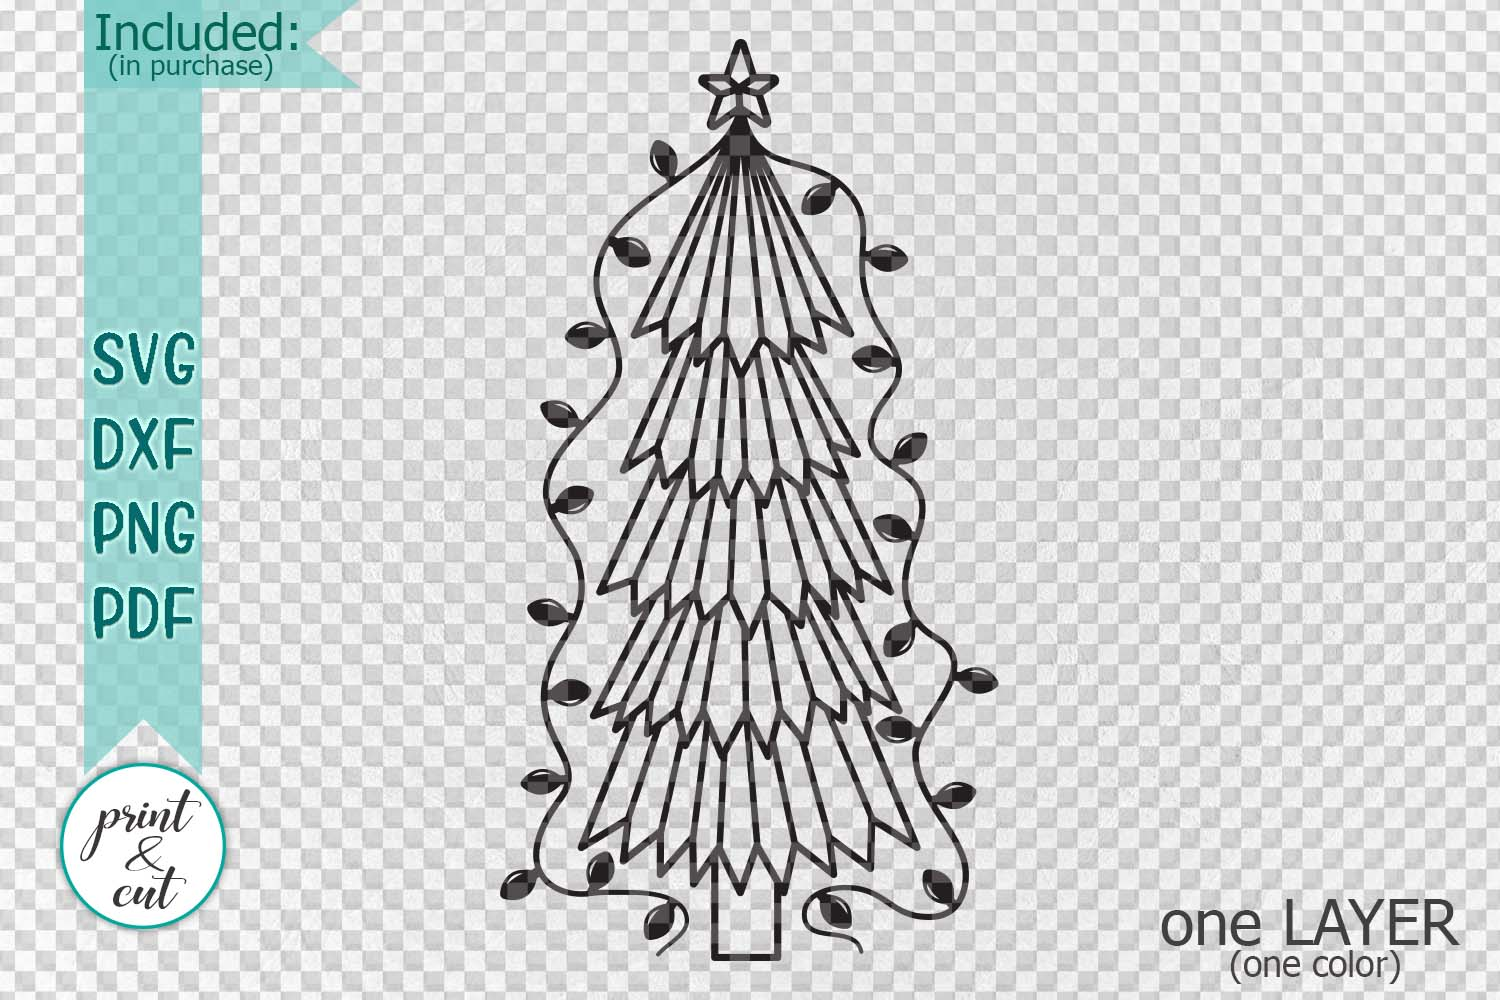 Primitive Christmas Tree.Primitive Christmas Tree Old Vintage Style Svg Dxf To Cut